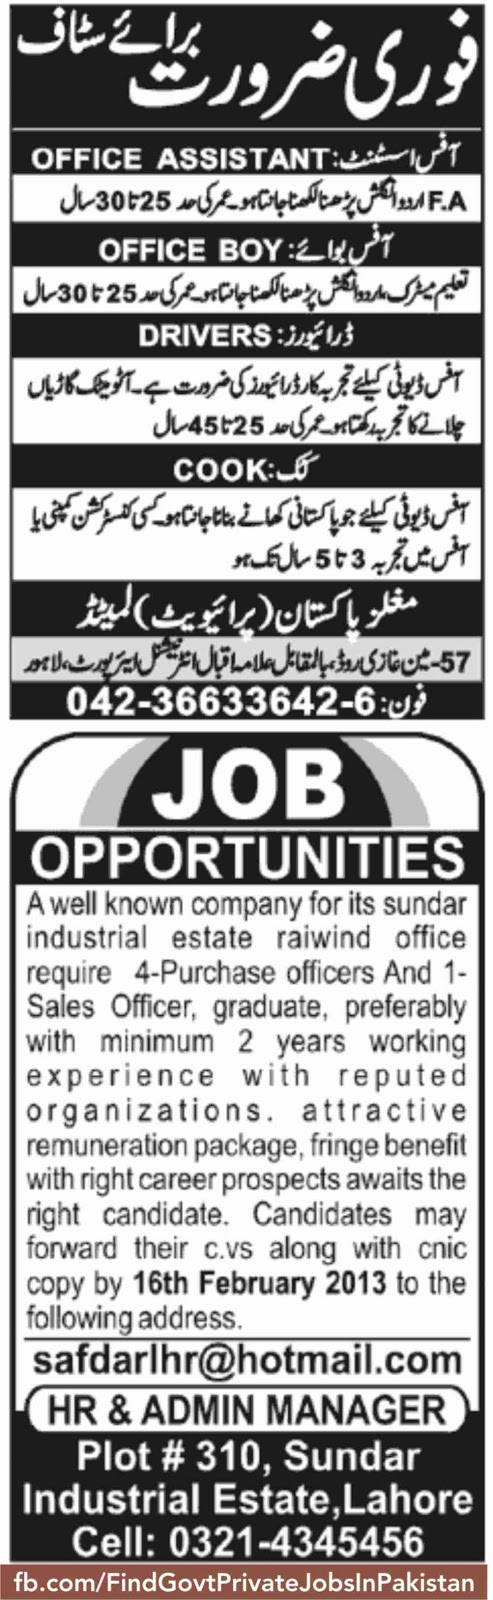 office staff required job ads